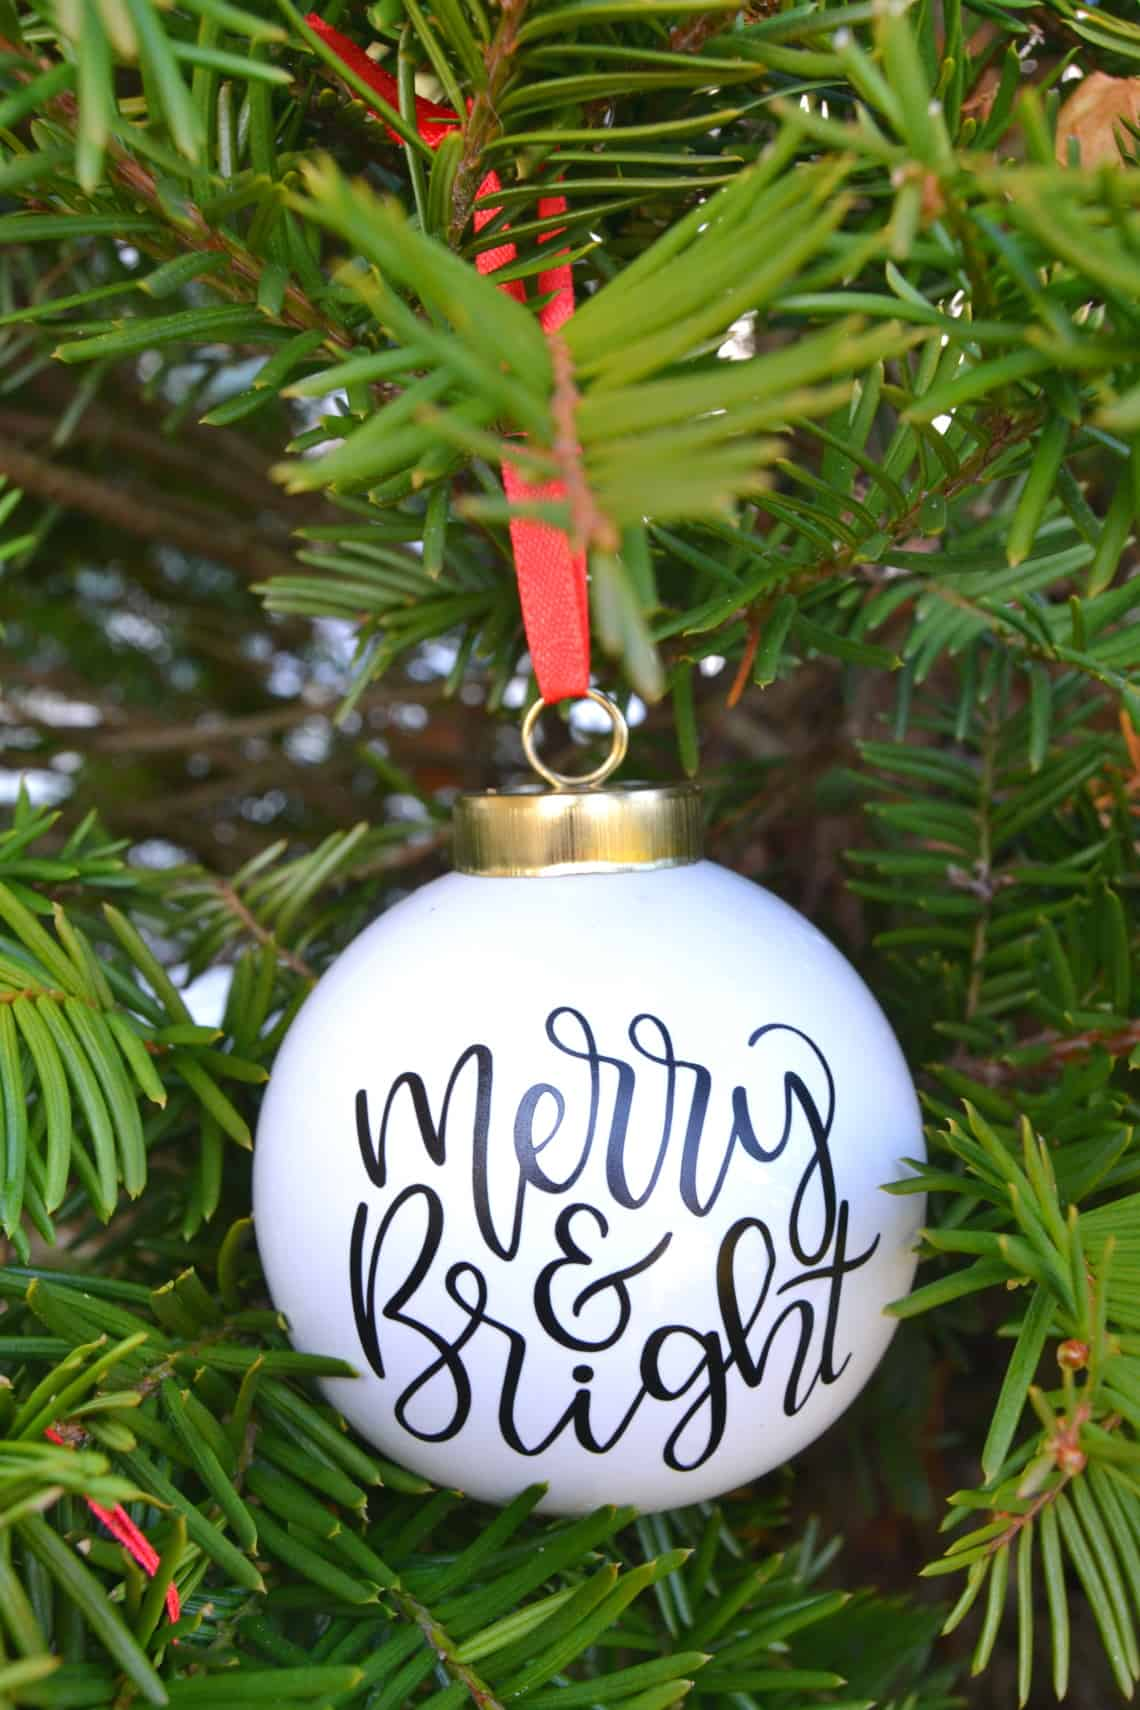 Making Christmas ornaments with cricut finished ornament hanging in a Christmas tree